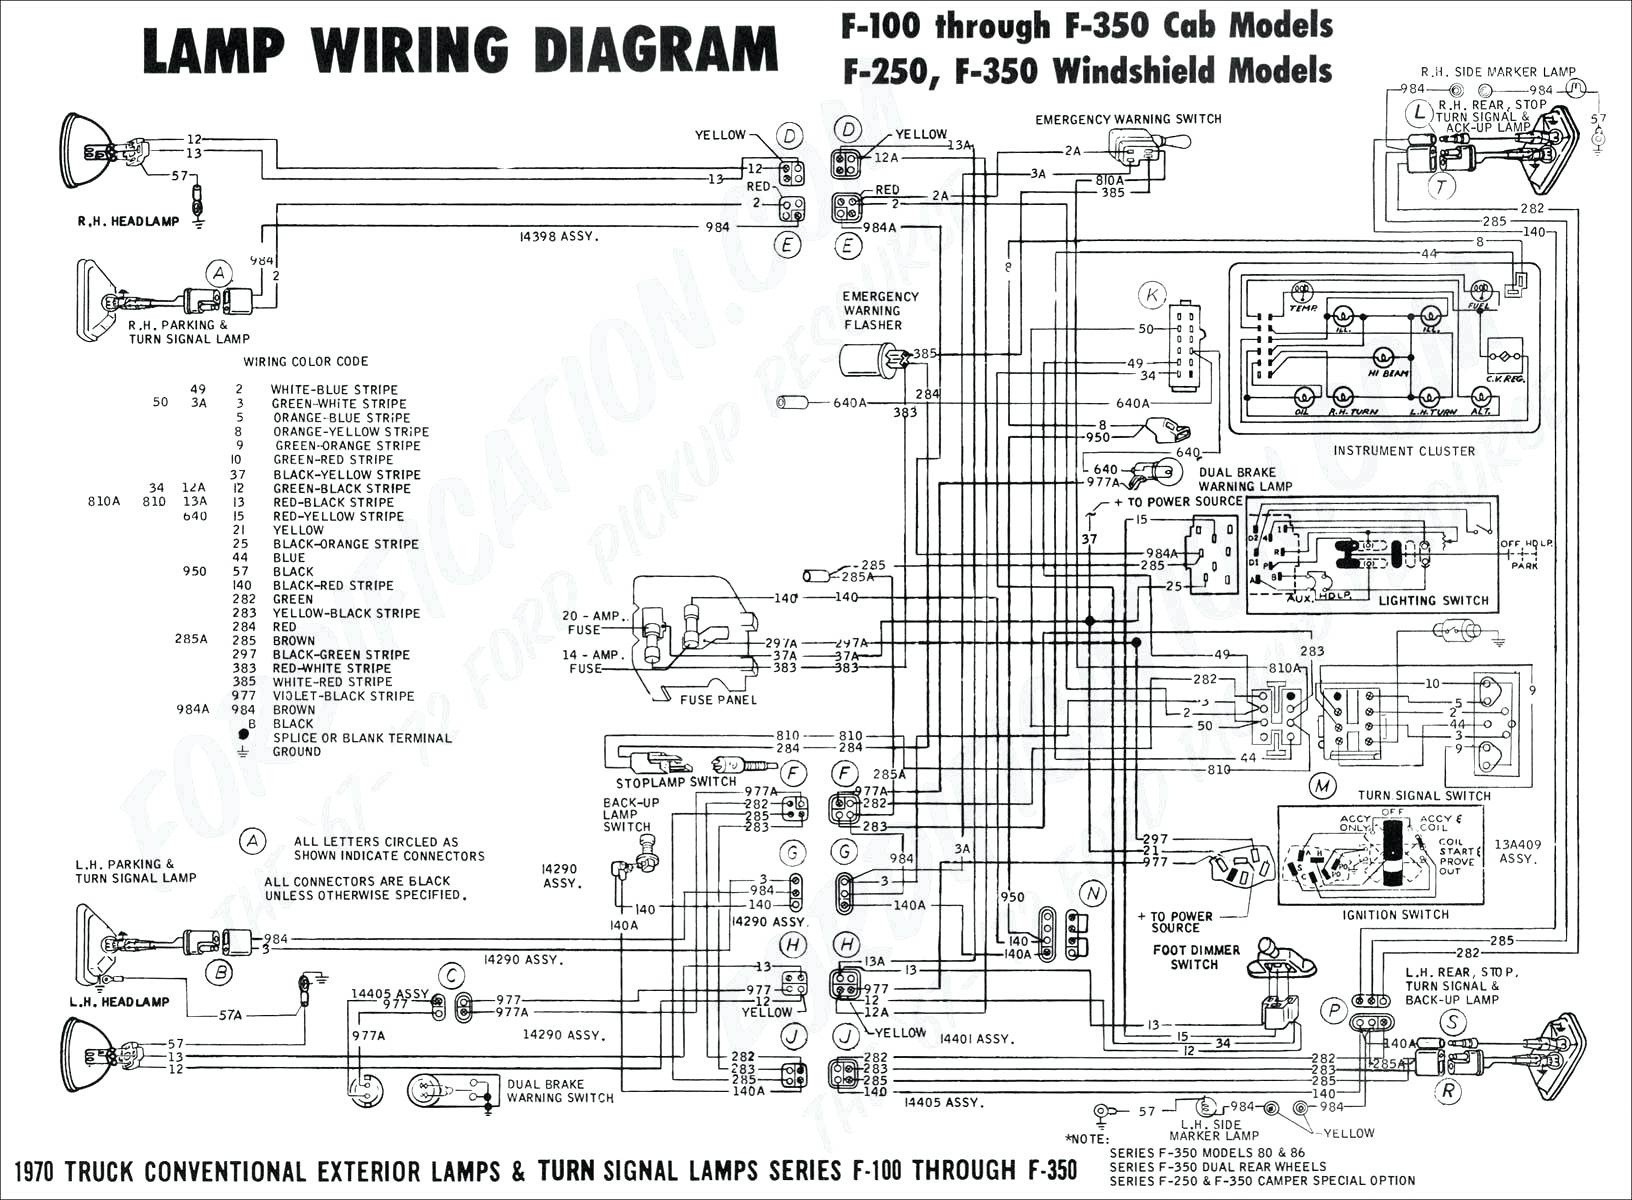 9n ford Tractor Wiring Diagram 1999 F53 Wiring Diagram Experts Wiring Diagram • Of 9n ford Tractor Wiring Diagram 1066 International Tractor Wiring Diagram Mastering Wiring Diagram •